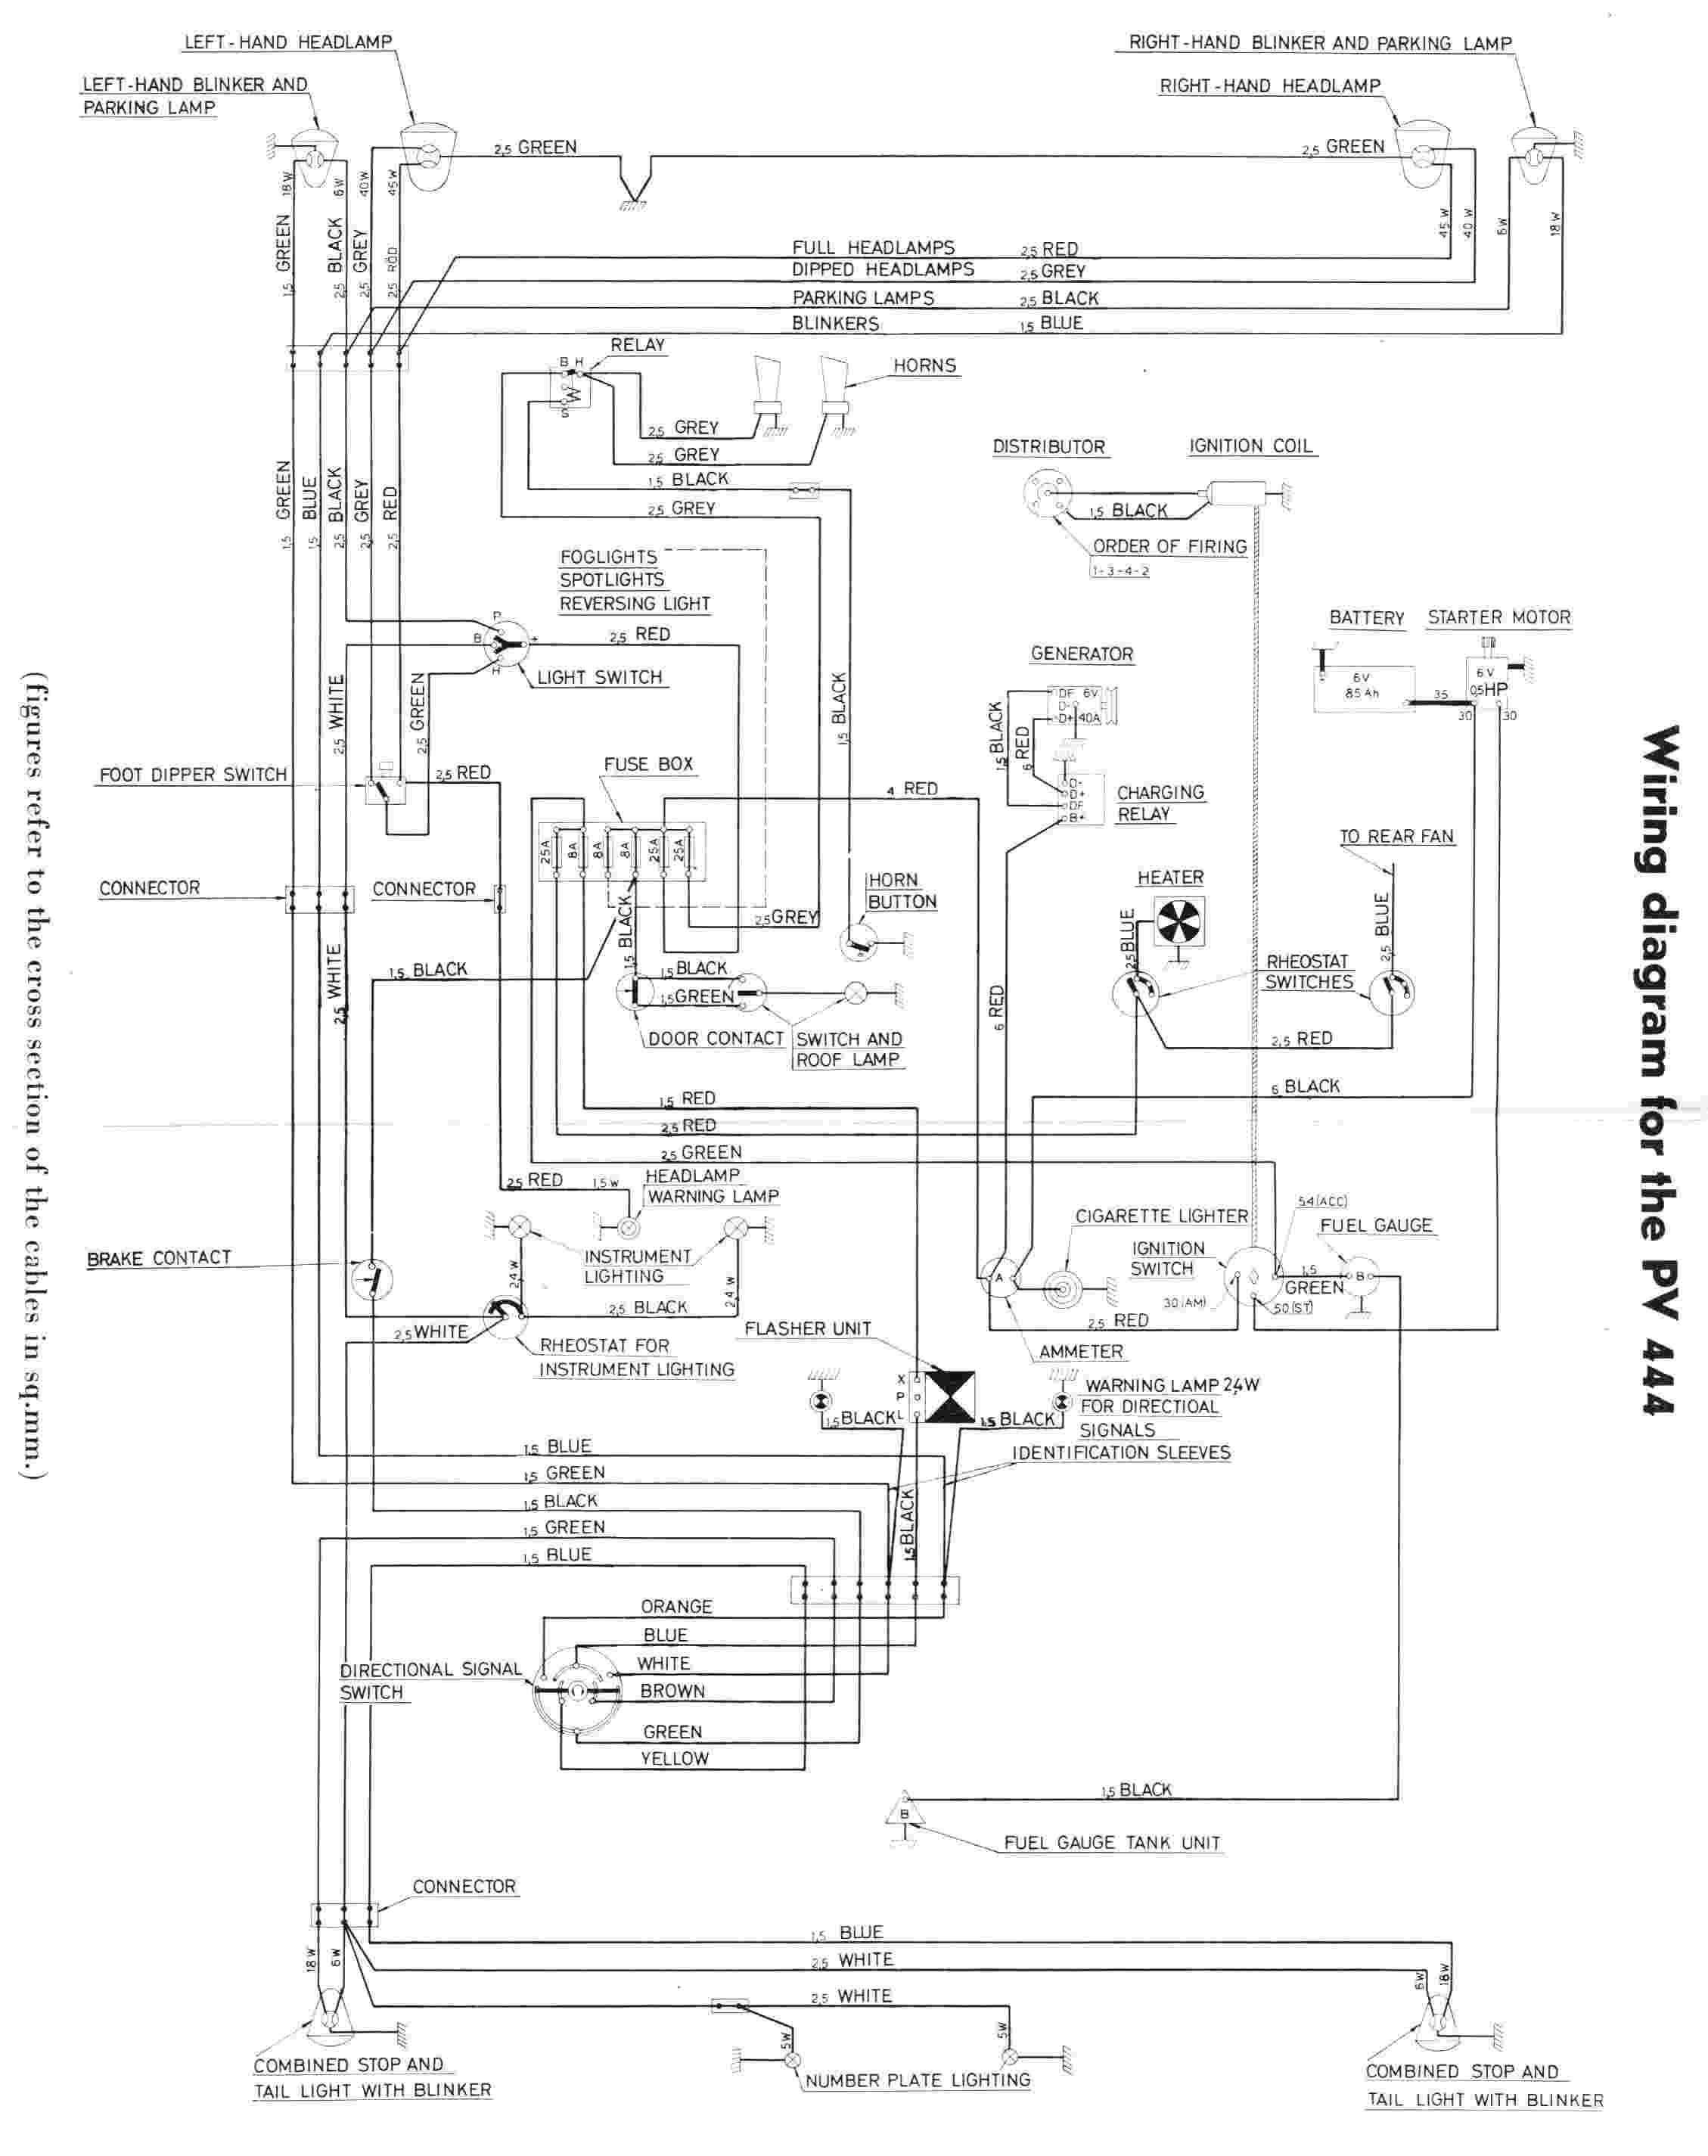 Citroen Relay 3 Wiring Diagram Just Diagrams Library Refrigeration Compressor